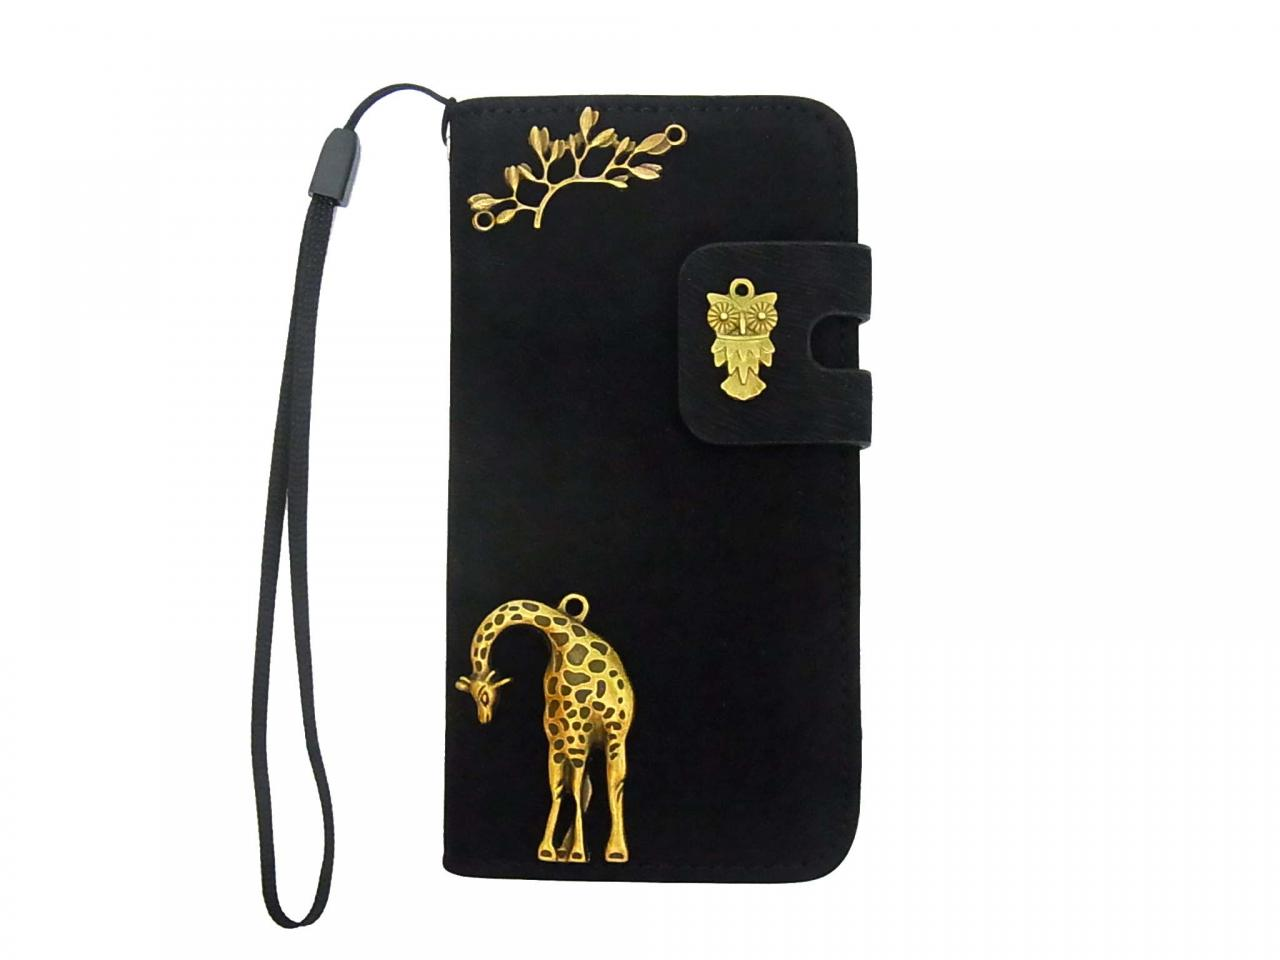 Iphone 5 Wallet Case Tree Iphone Case Giraffe Iphone 5